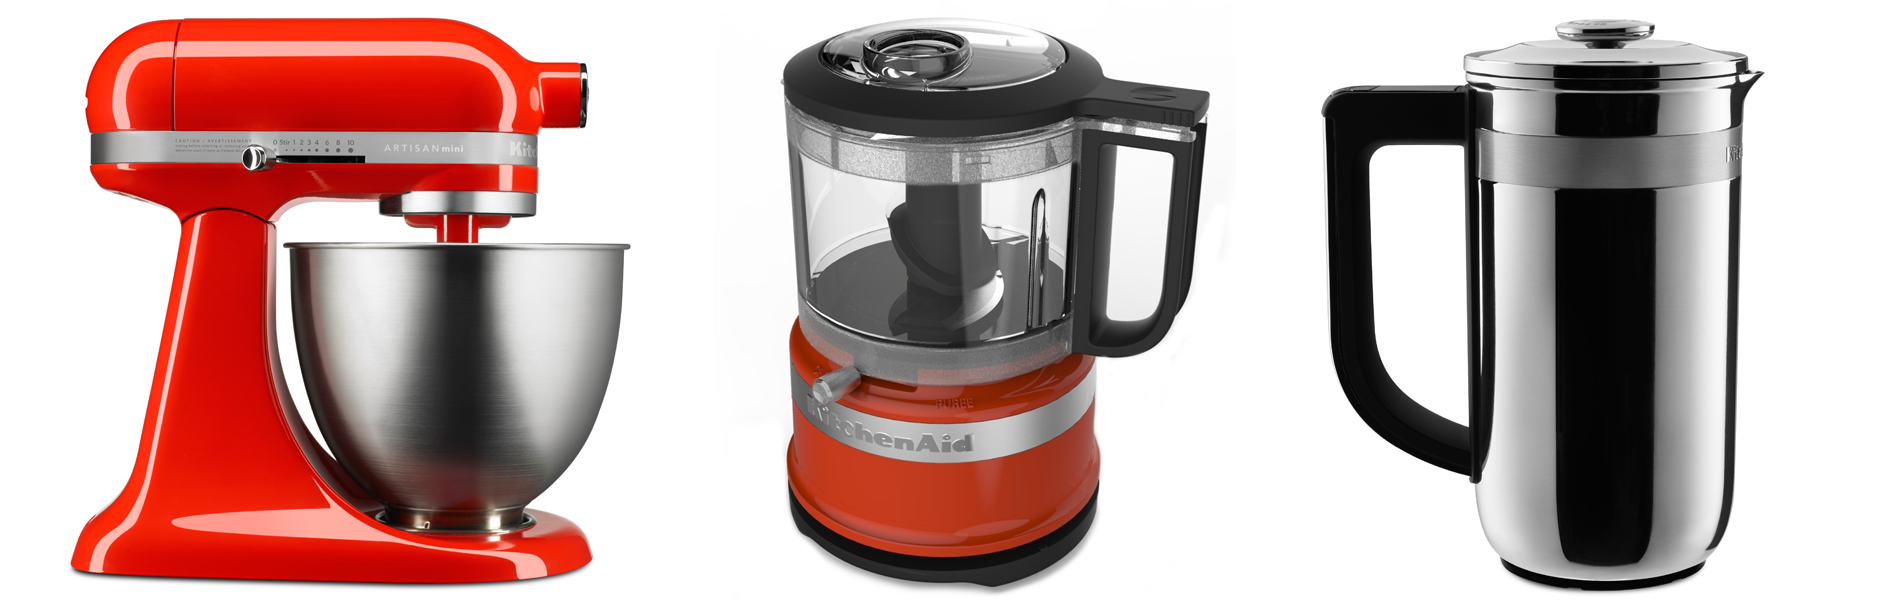 small gifts big performance small appliance gift ideas from kitchenaid